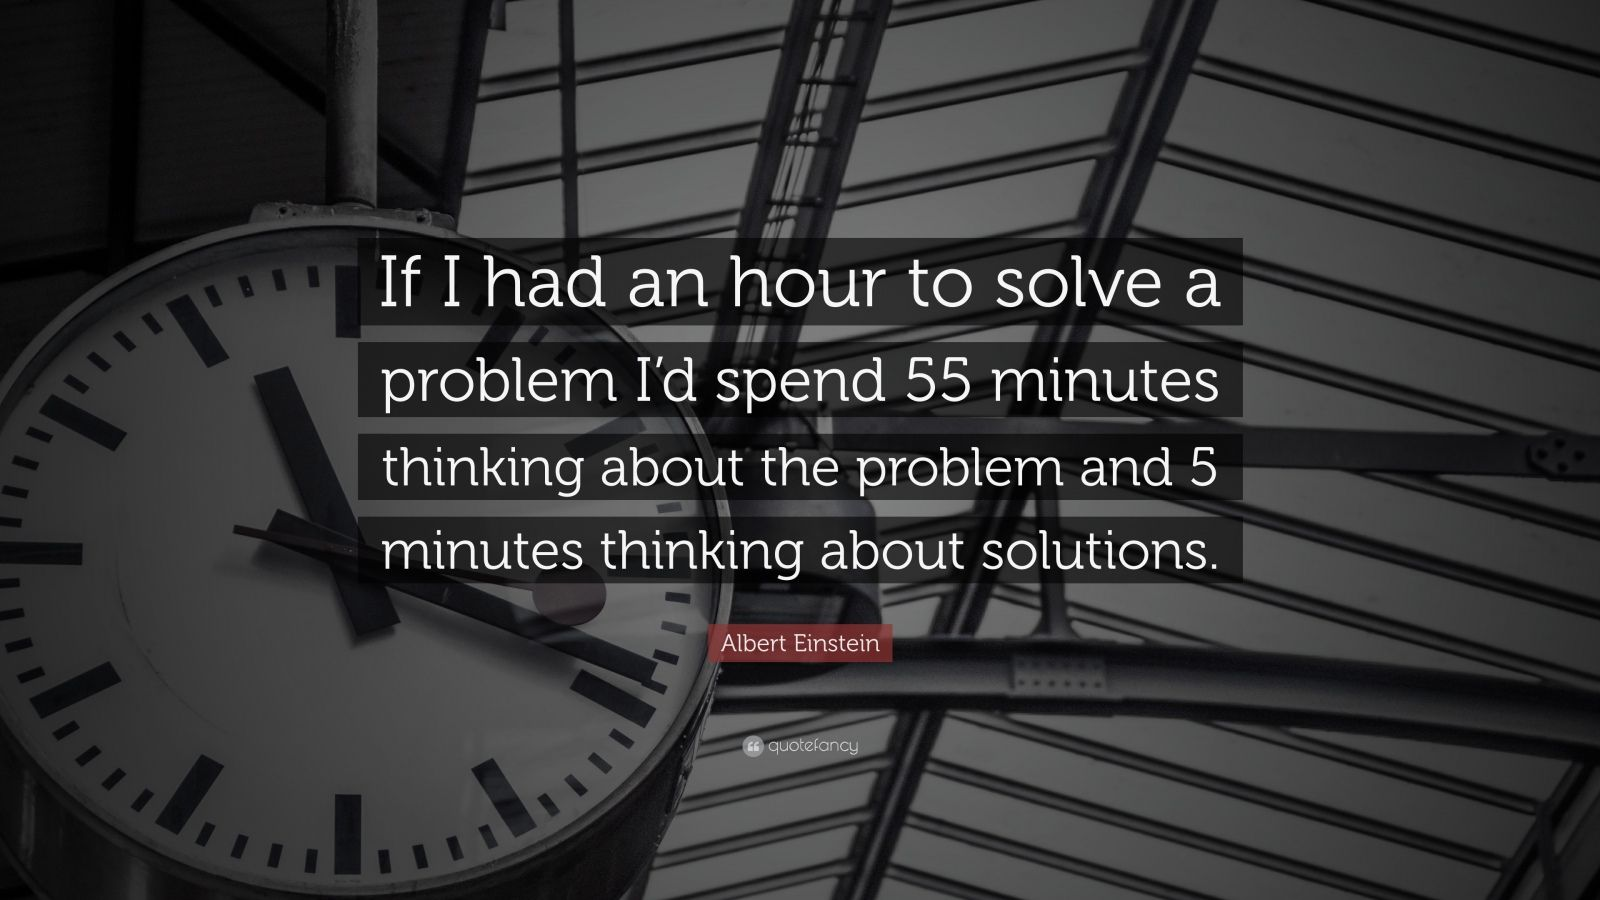 Tamil Inspirational Quotes Wallpaper Albert Einstein Quote If I Had An Hour To Solve A